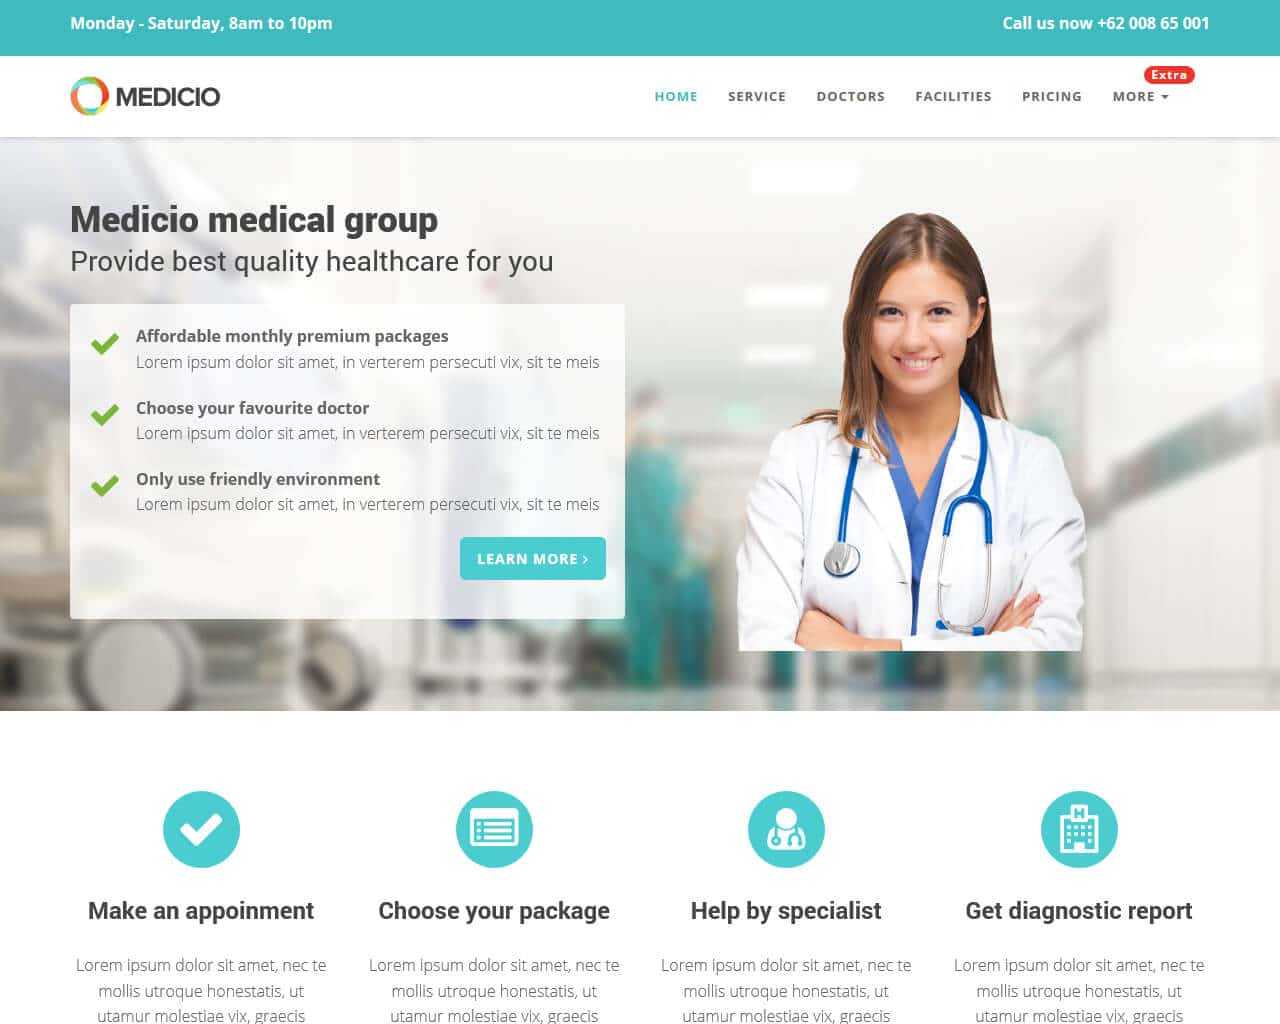 20+ Best Medical, Hospital and Clinic Website Templates ...